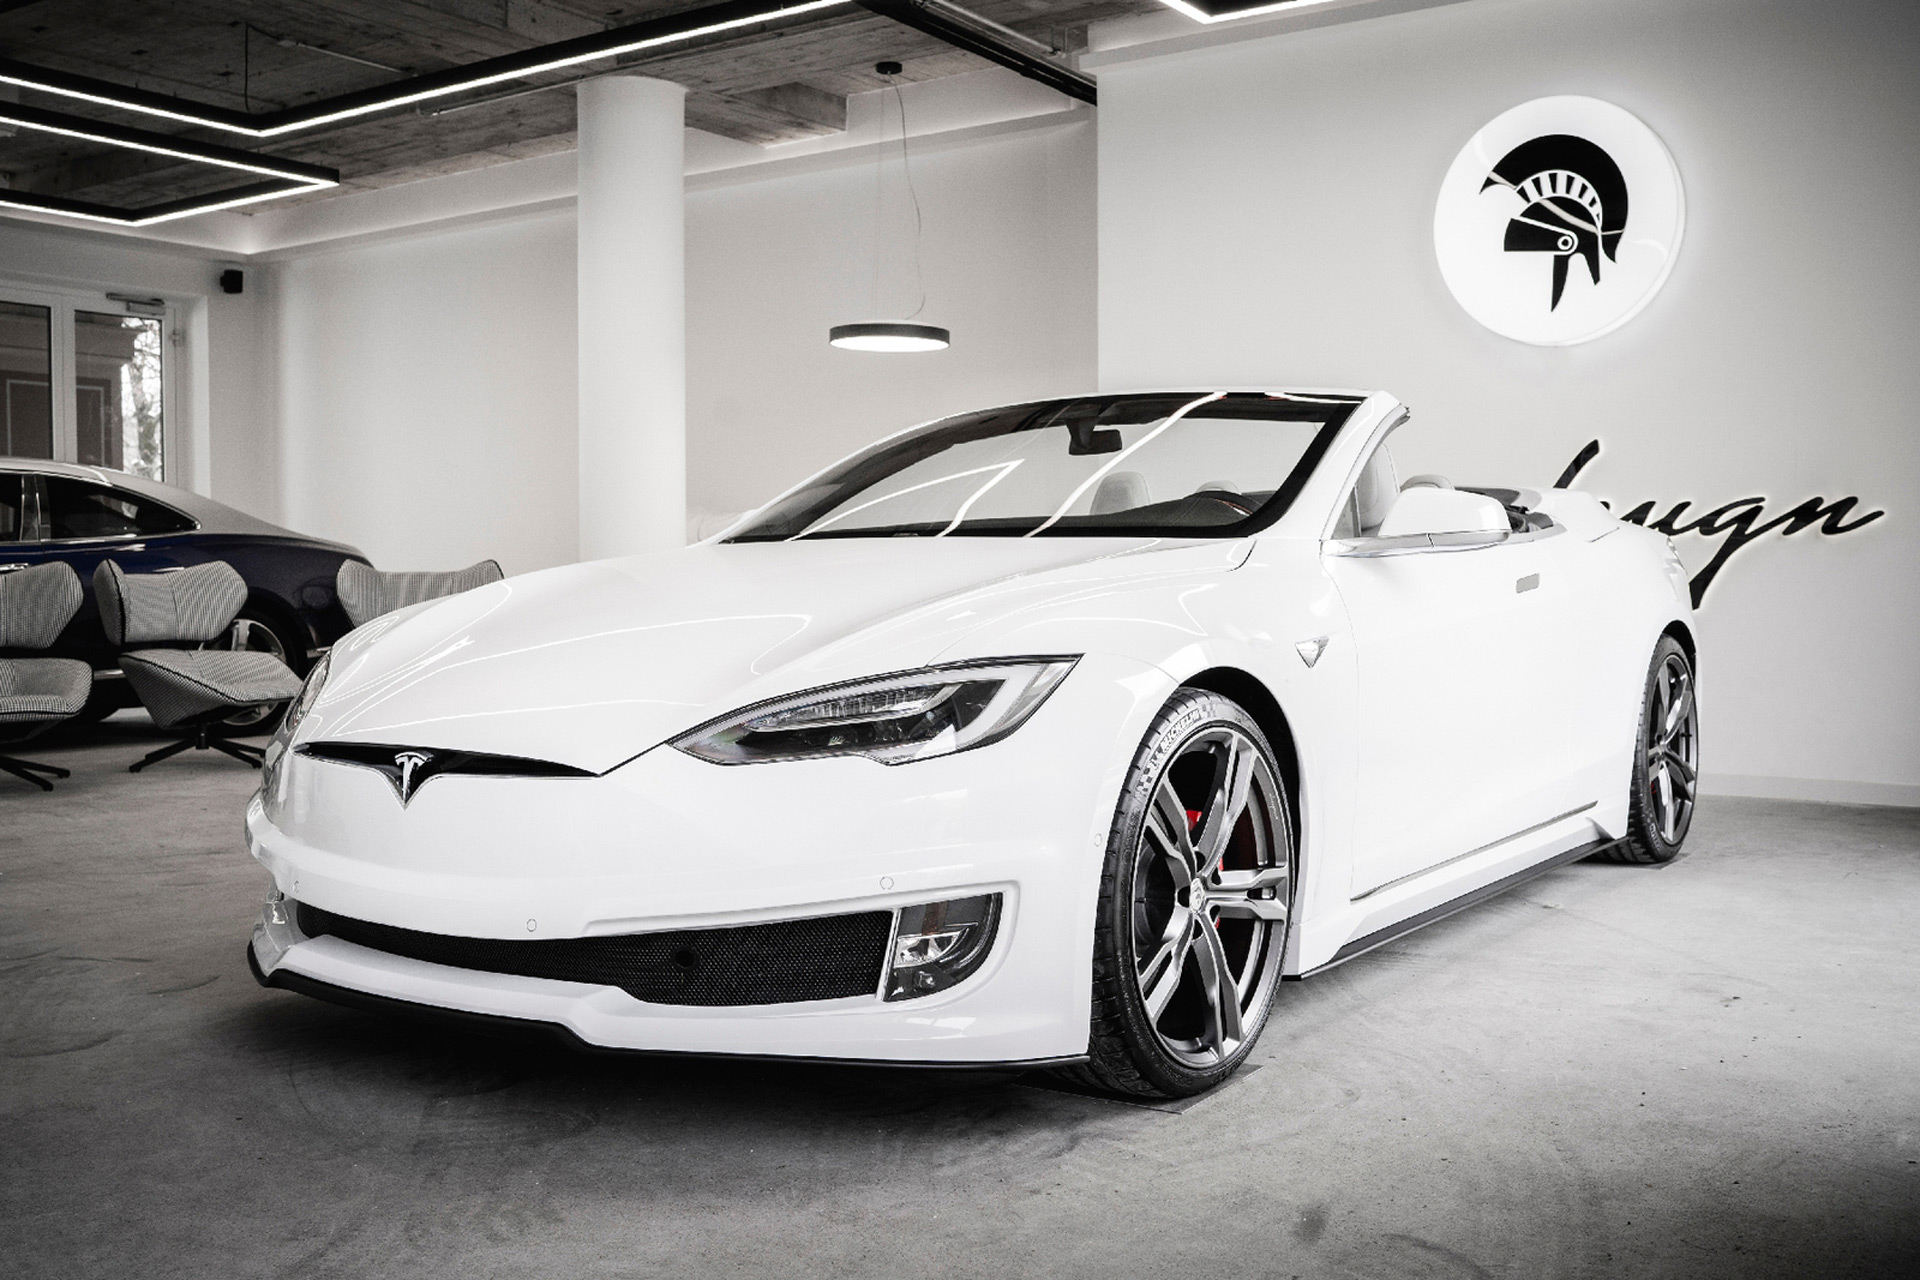 Tesla Model S convertible conversion could be best alternative to overdue Roadster